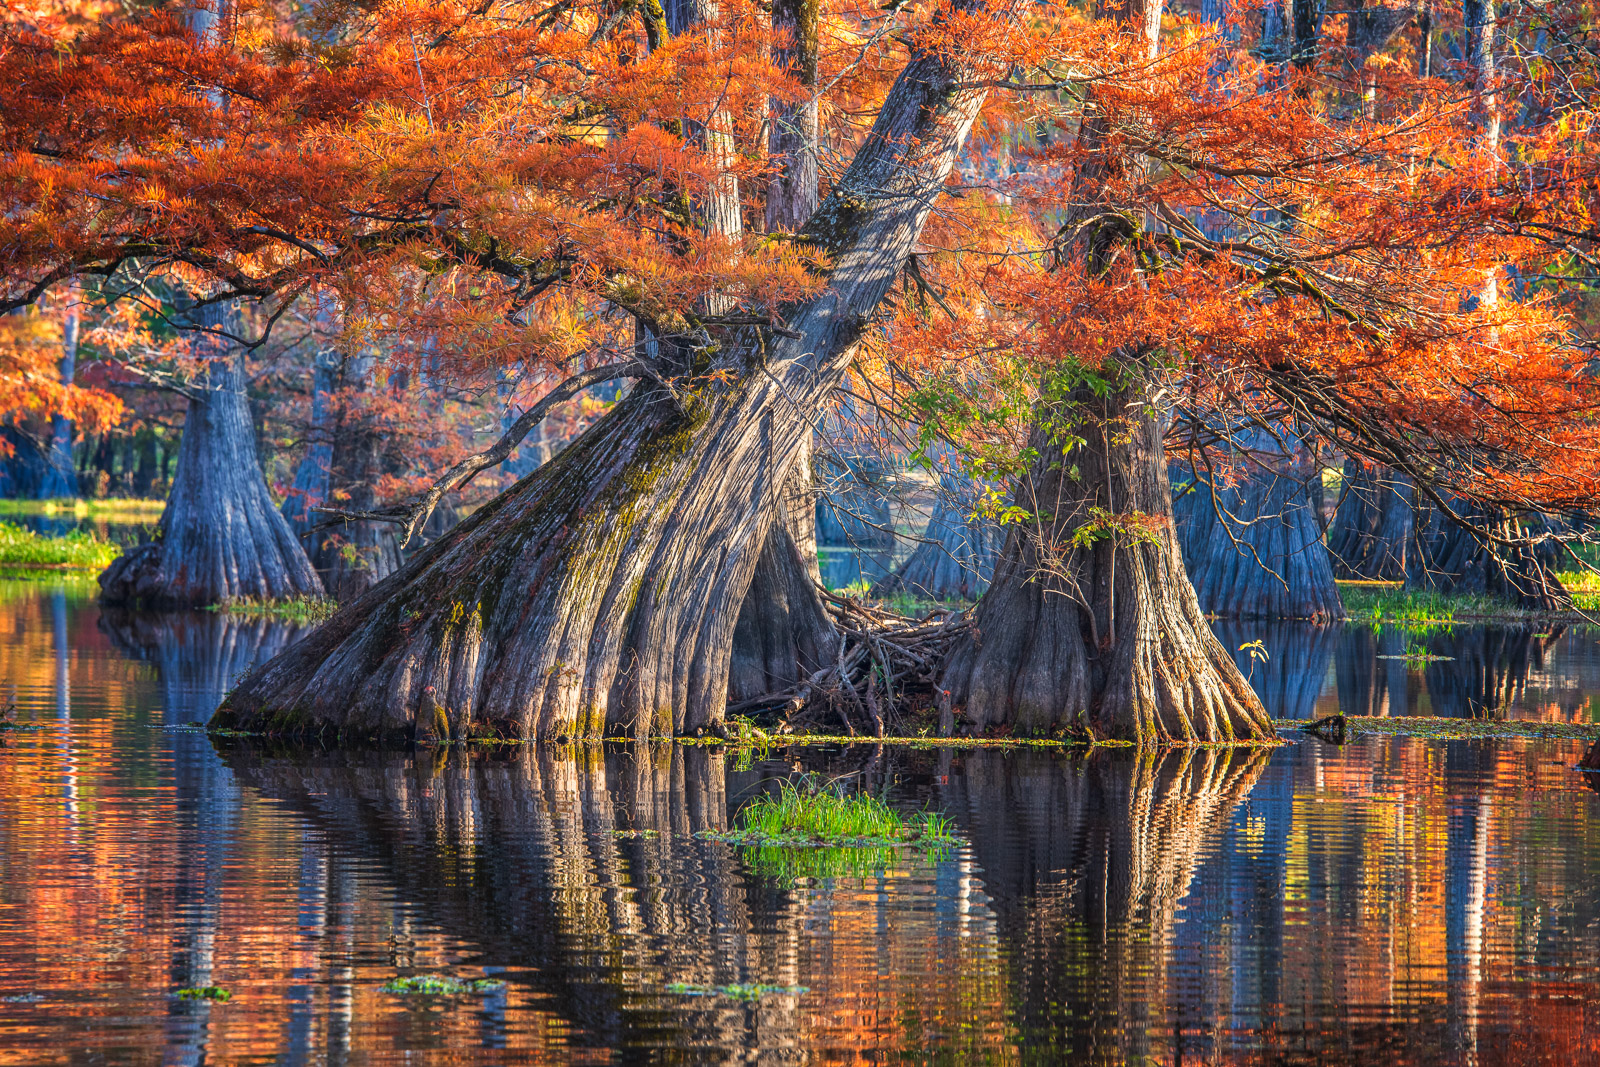 Caddo Lake is flood plain that has swamped one the of the Southeast's largest Bald Cypress environments. It is one of the most...